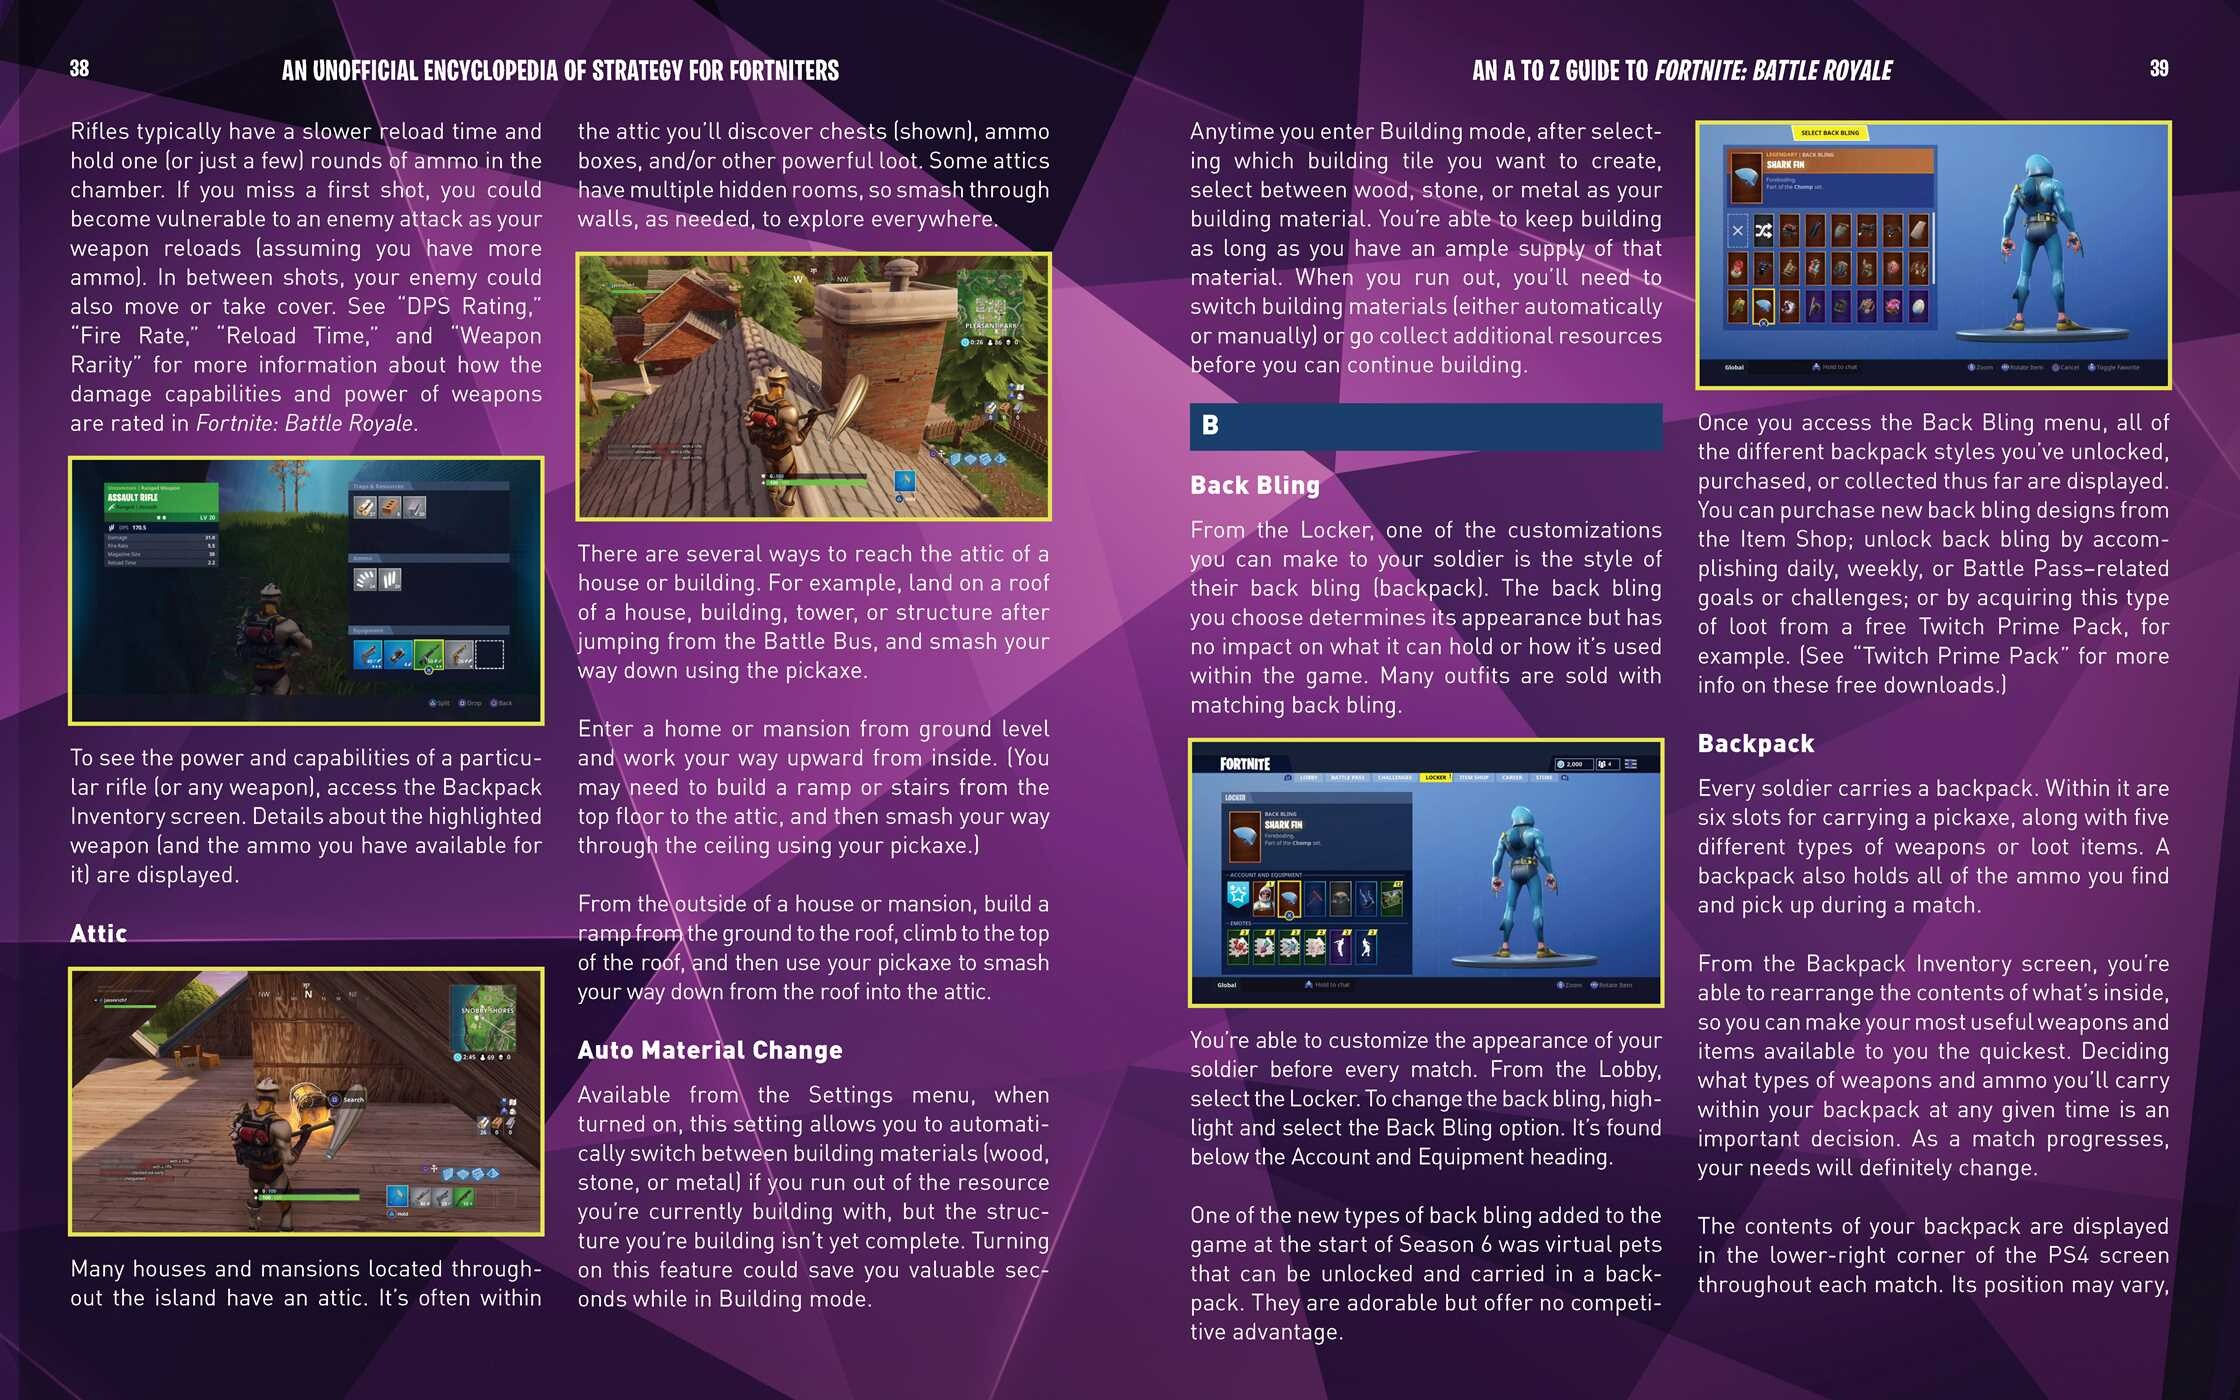 unofficial encyclopedia of strategy for fortniters battle royale for noobs - fortnite encyclopedia